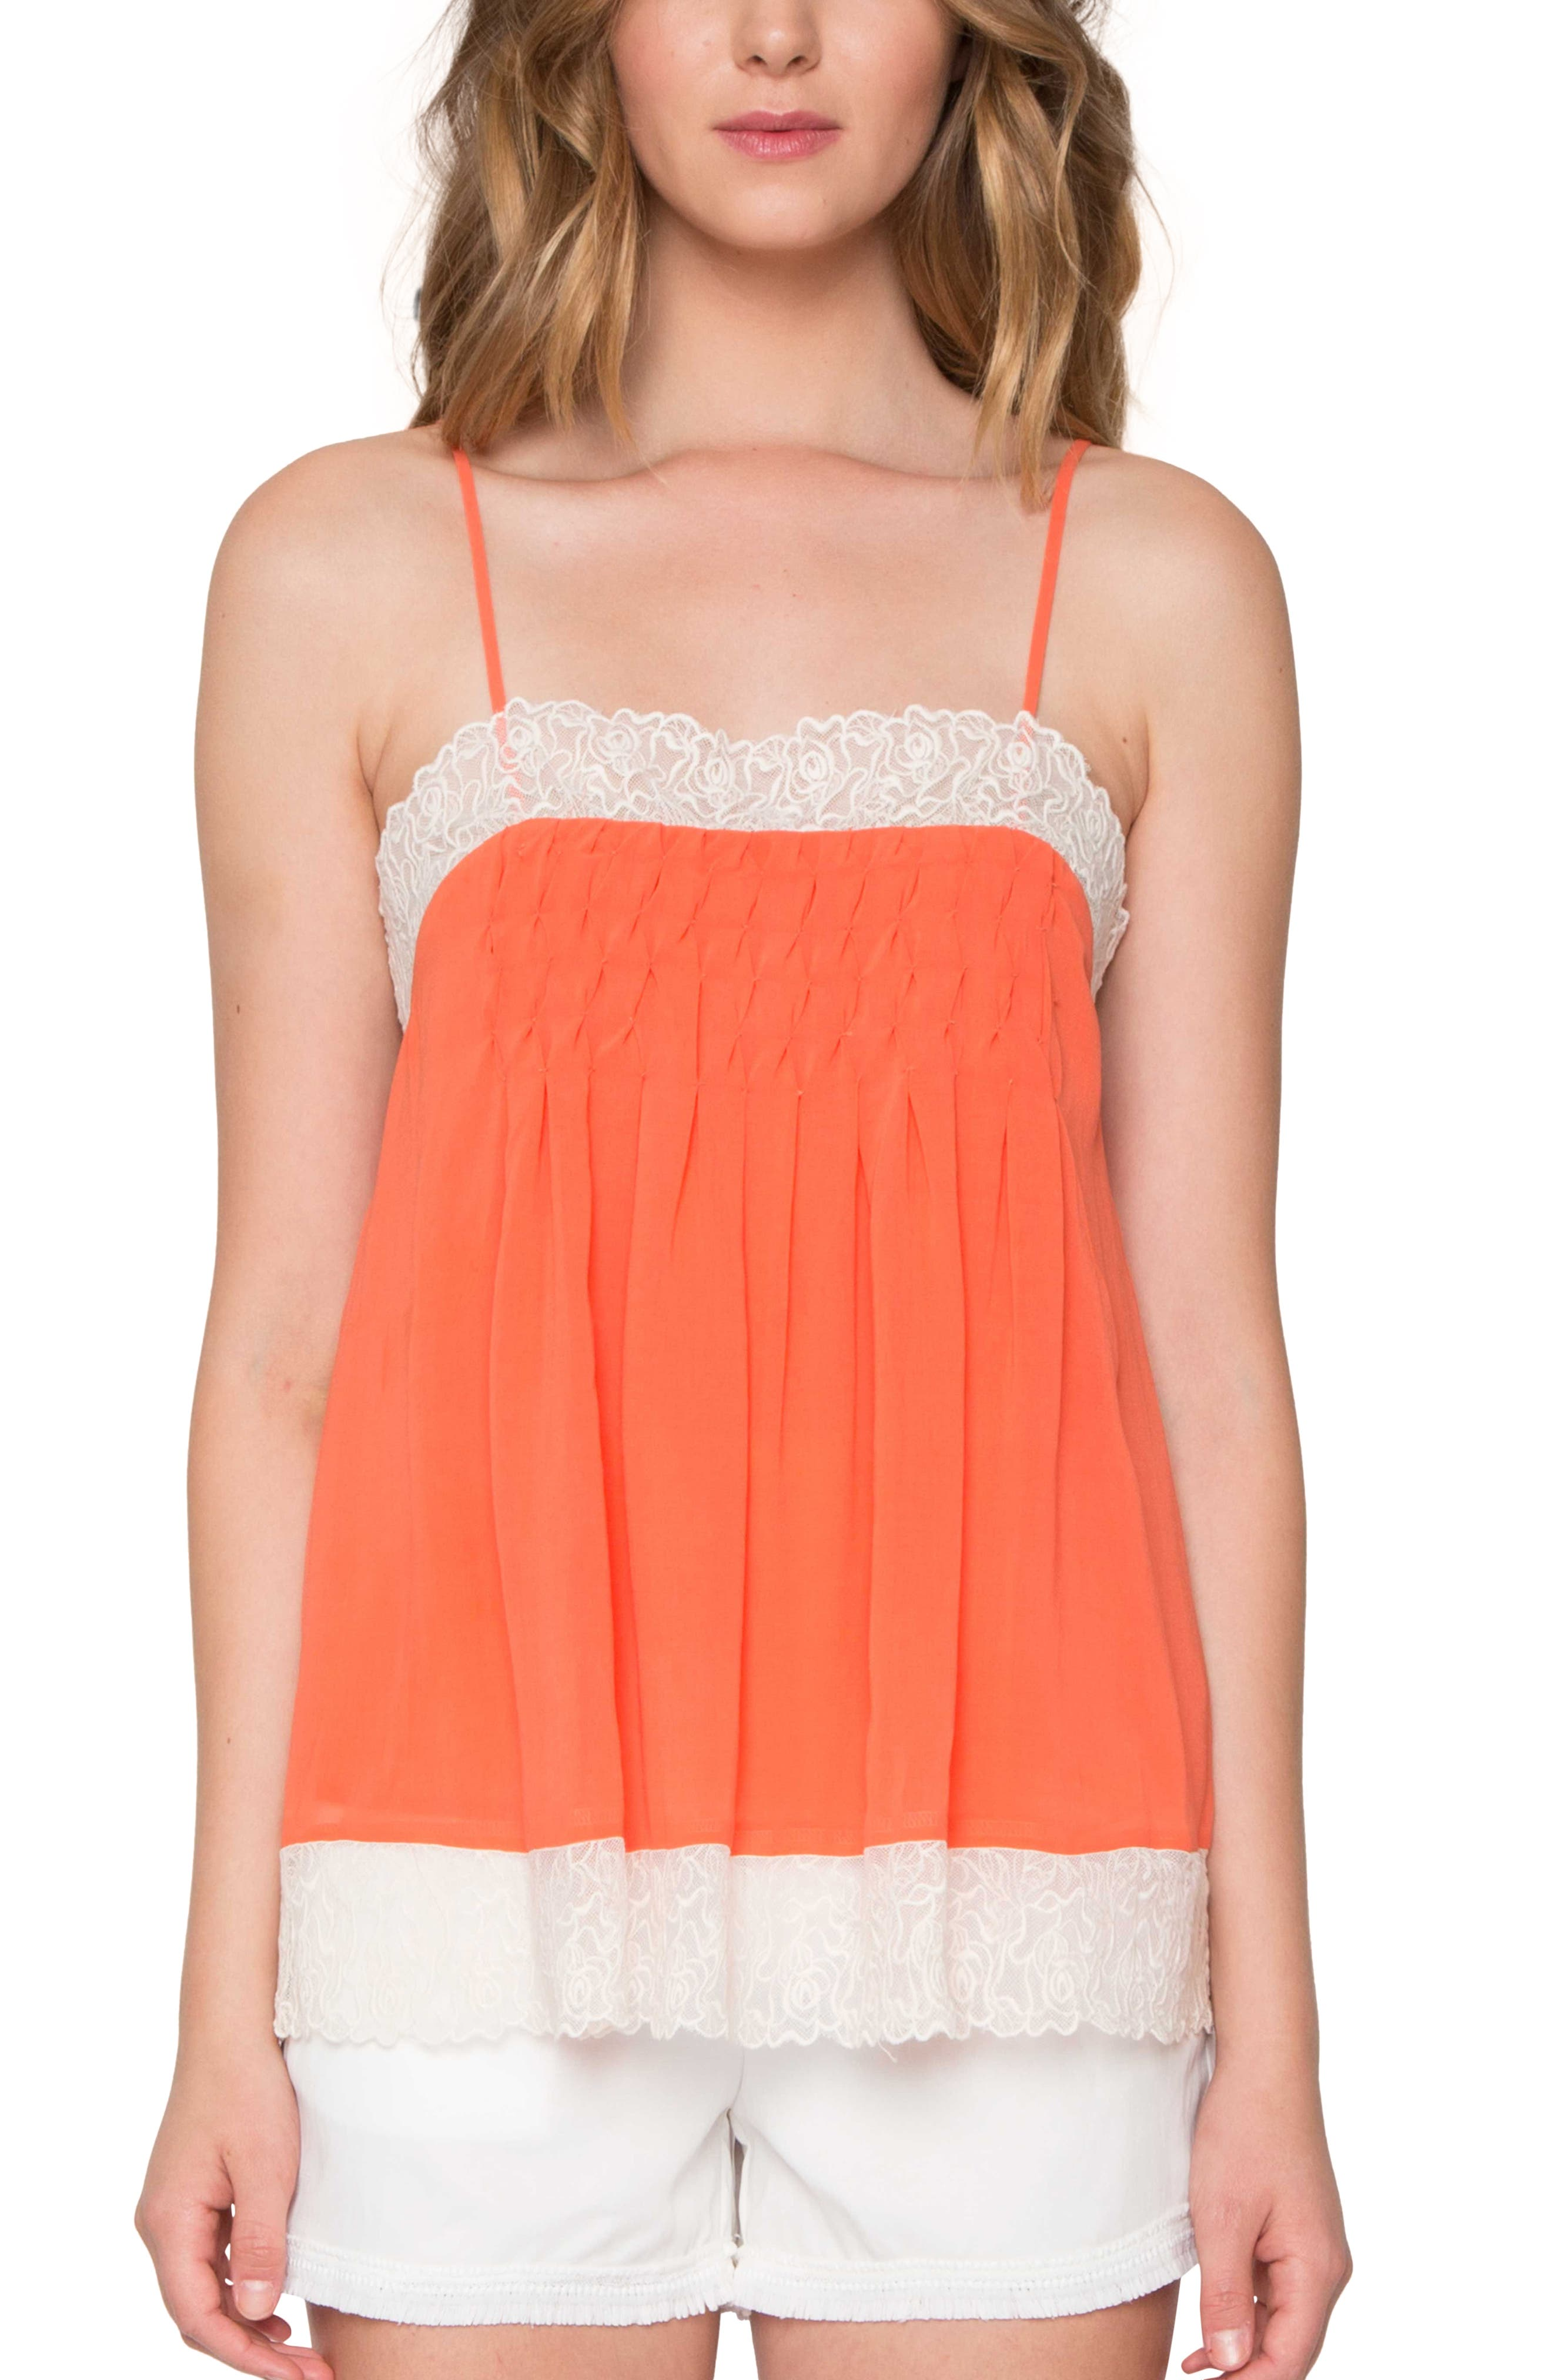 Willow & Clay Lace Trim Camisole